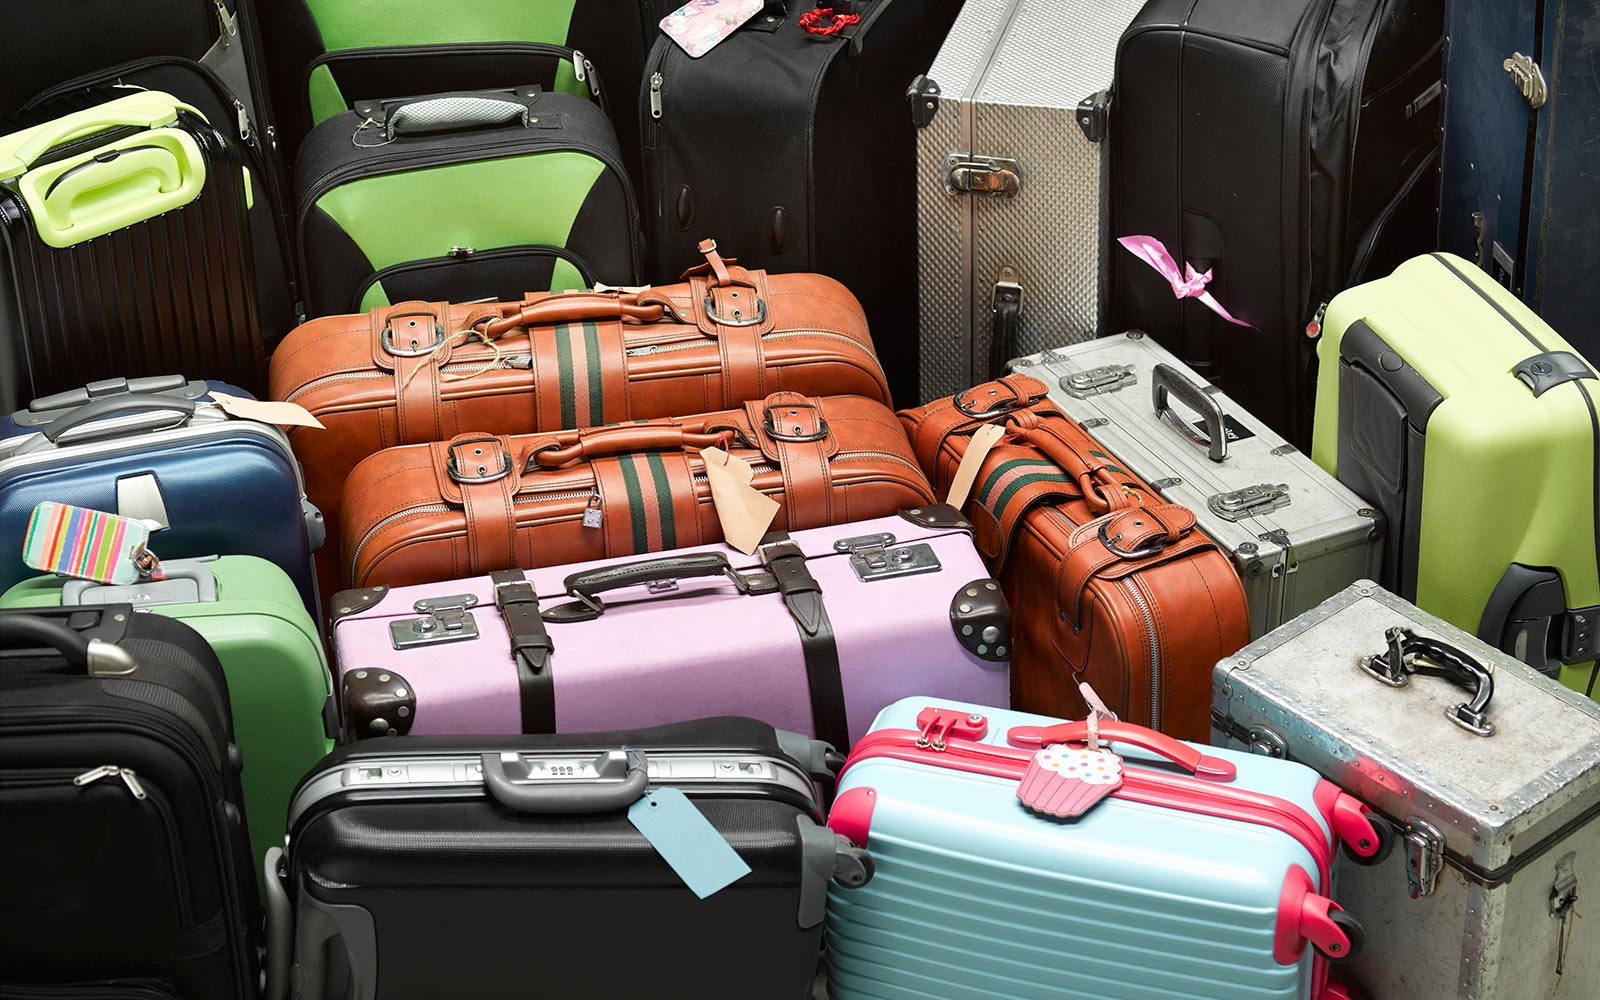 Airport Suitcase Luggage Baggage Smart Ban